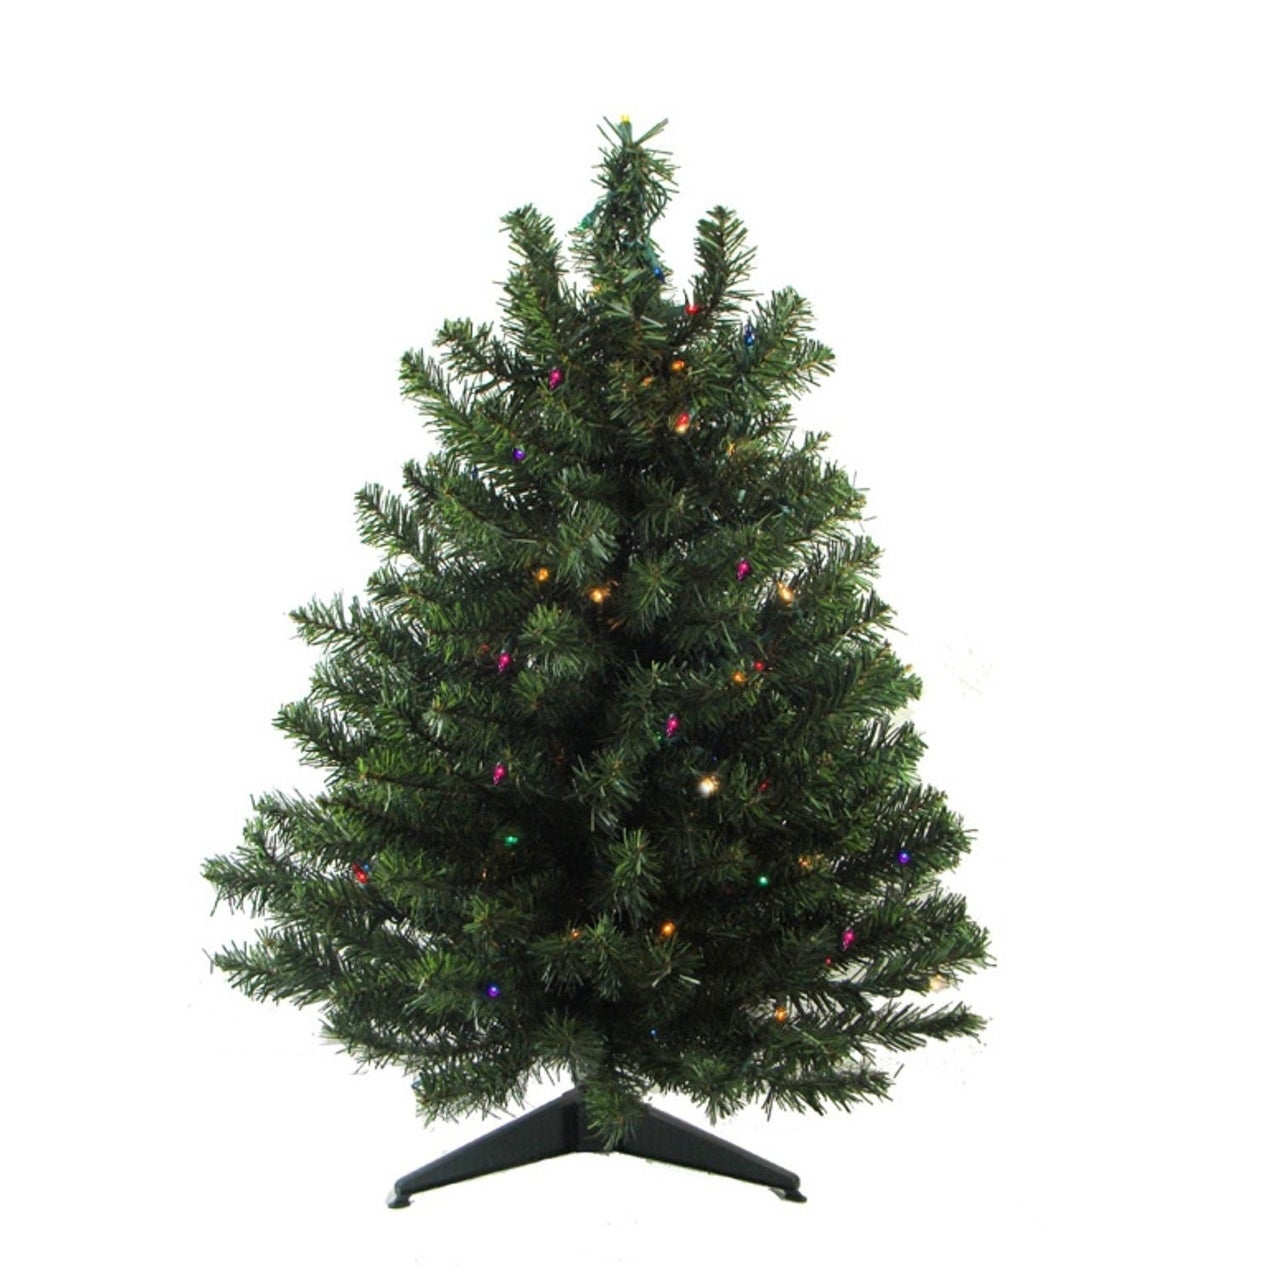 DARICE 3' Pre-Lit LED Natural Two-Tone Pine Artificial Ch...